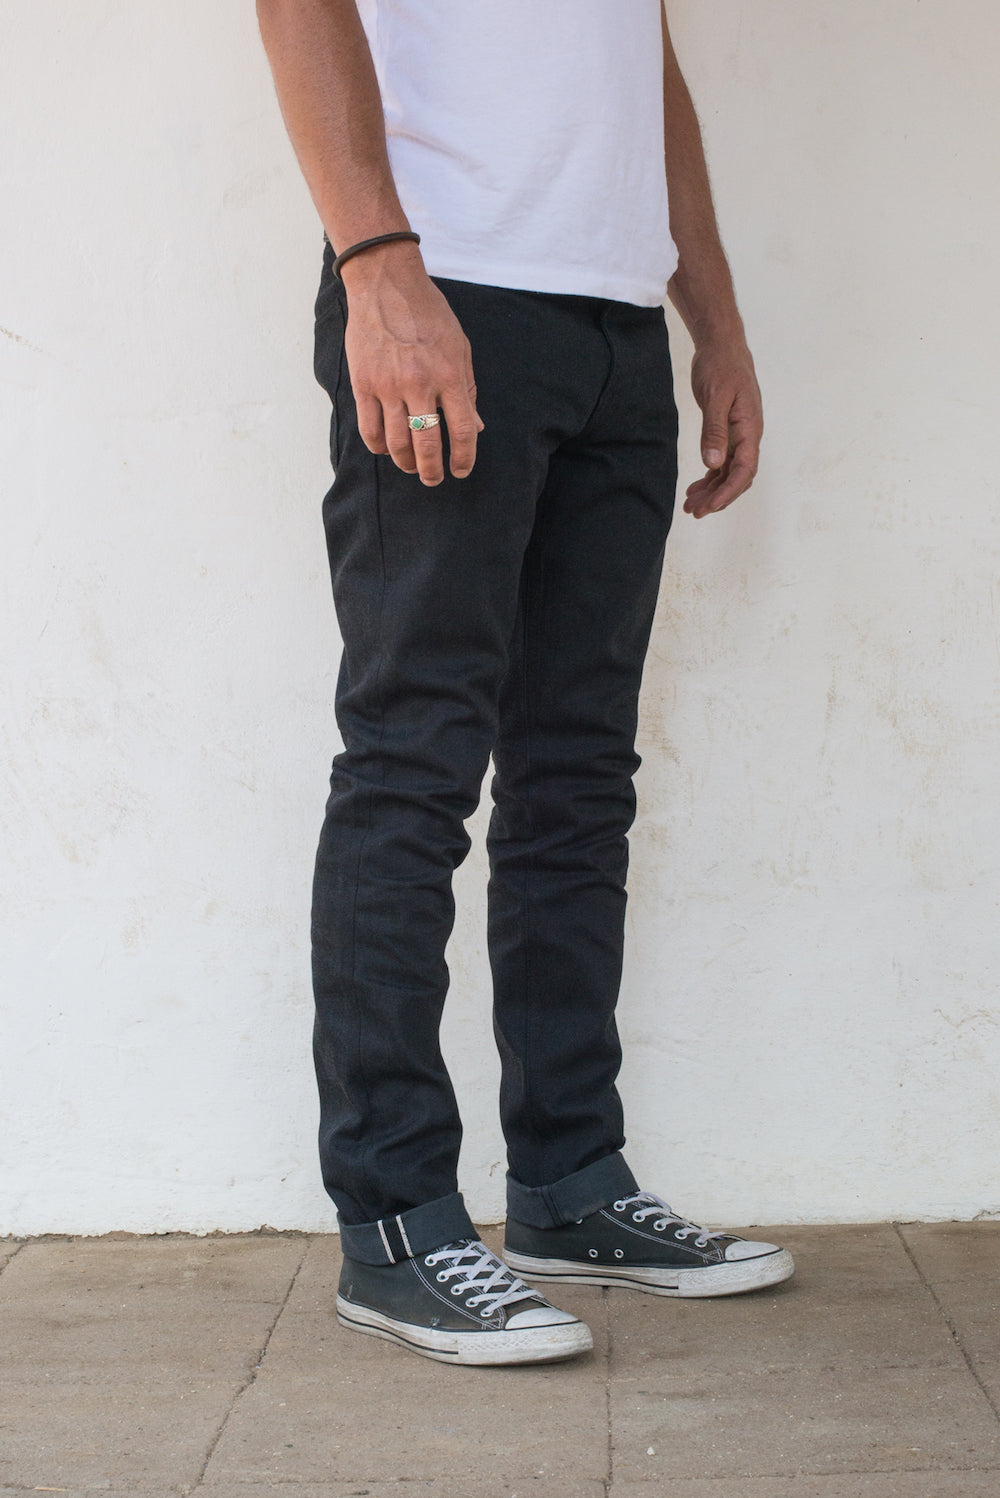 Avila Slim Taper - Raw 14.25 oz Black Grey Denim On Model Profile